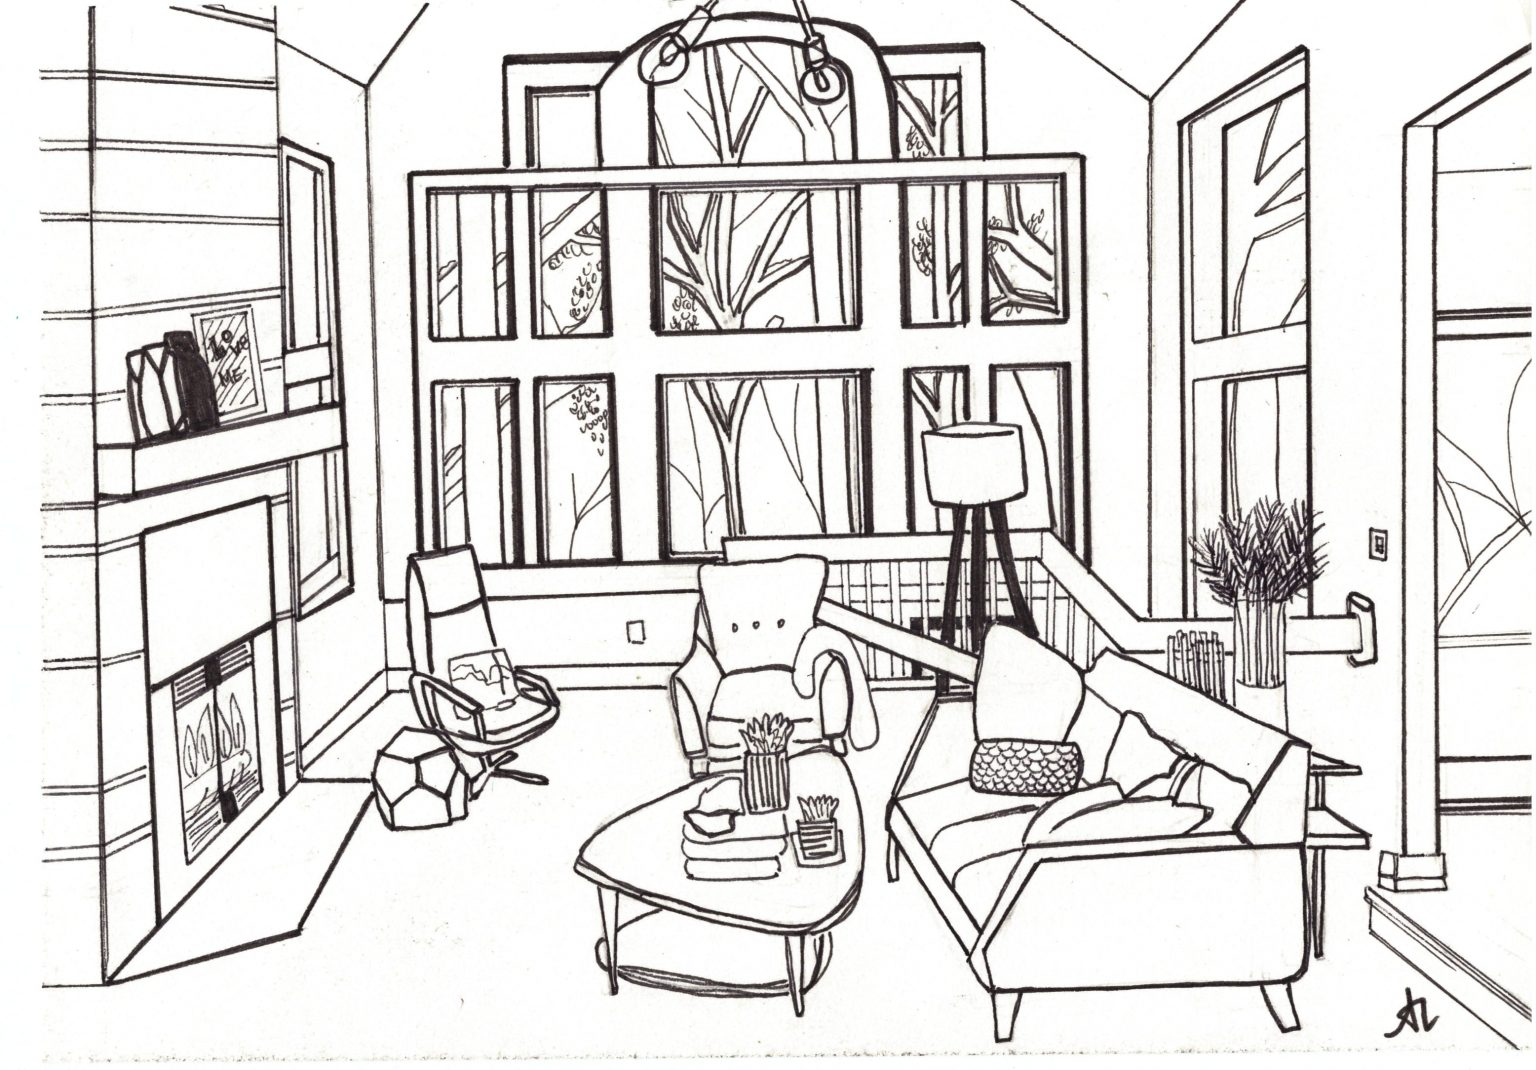 Living Room2019, ink on paper, 8.5 x11